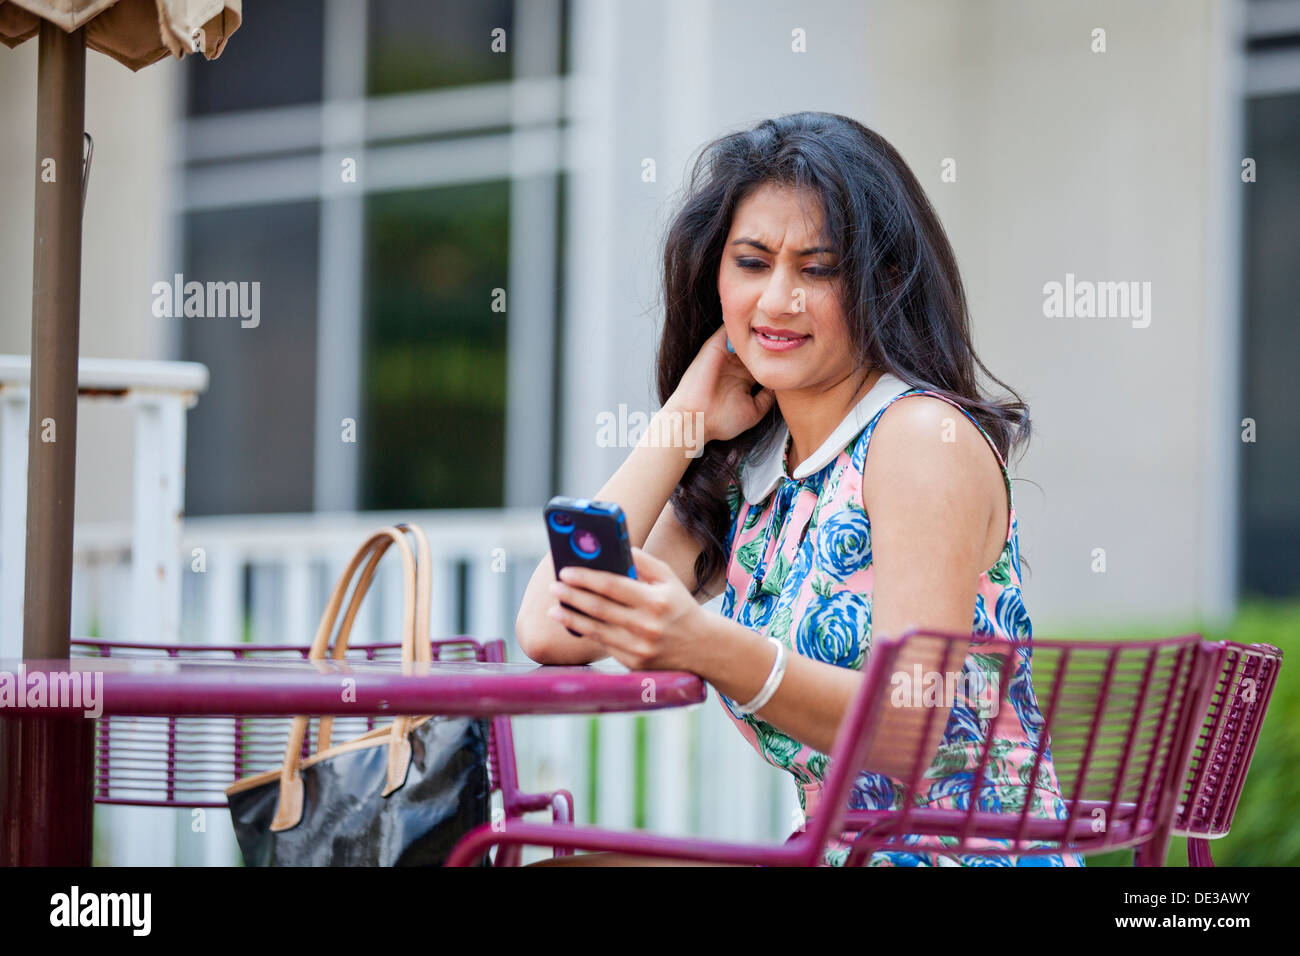 Concerné young woman looking at smart phone Photo Stock